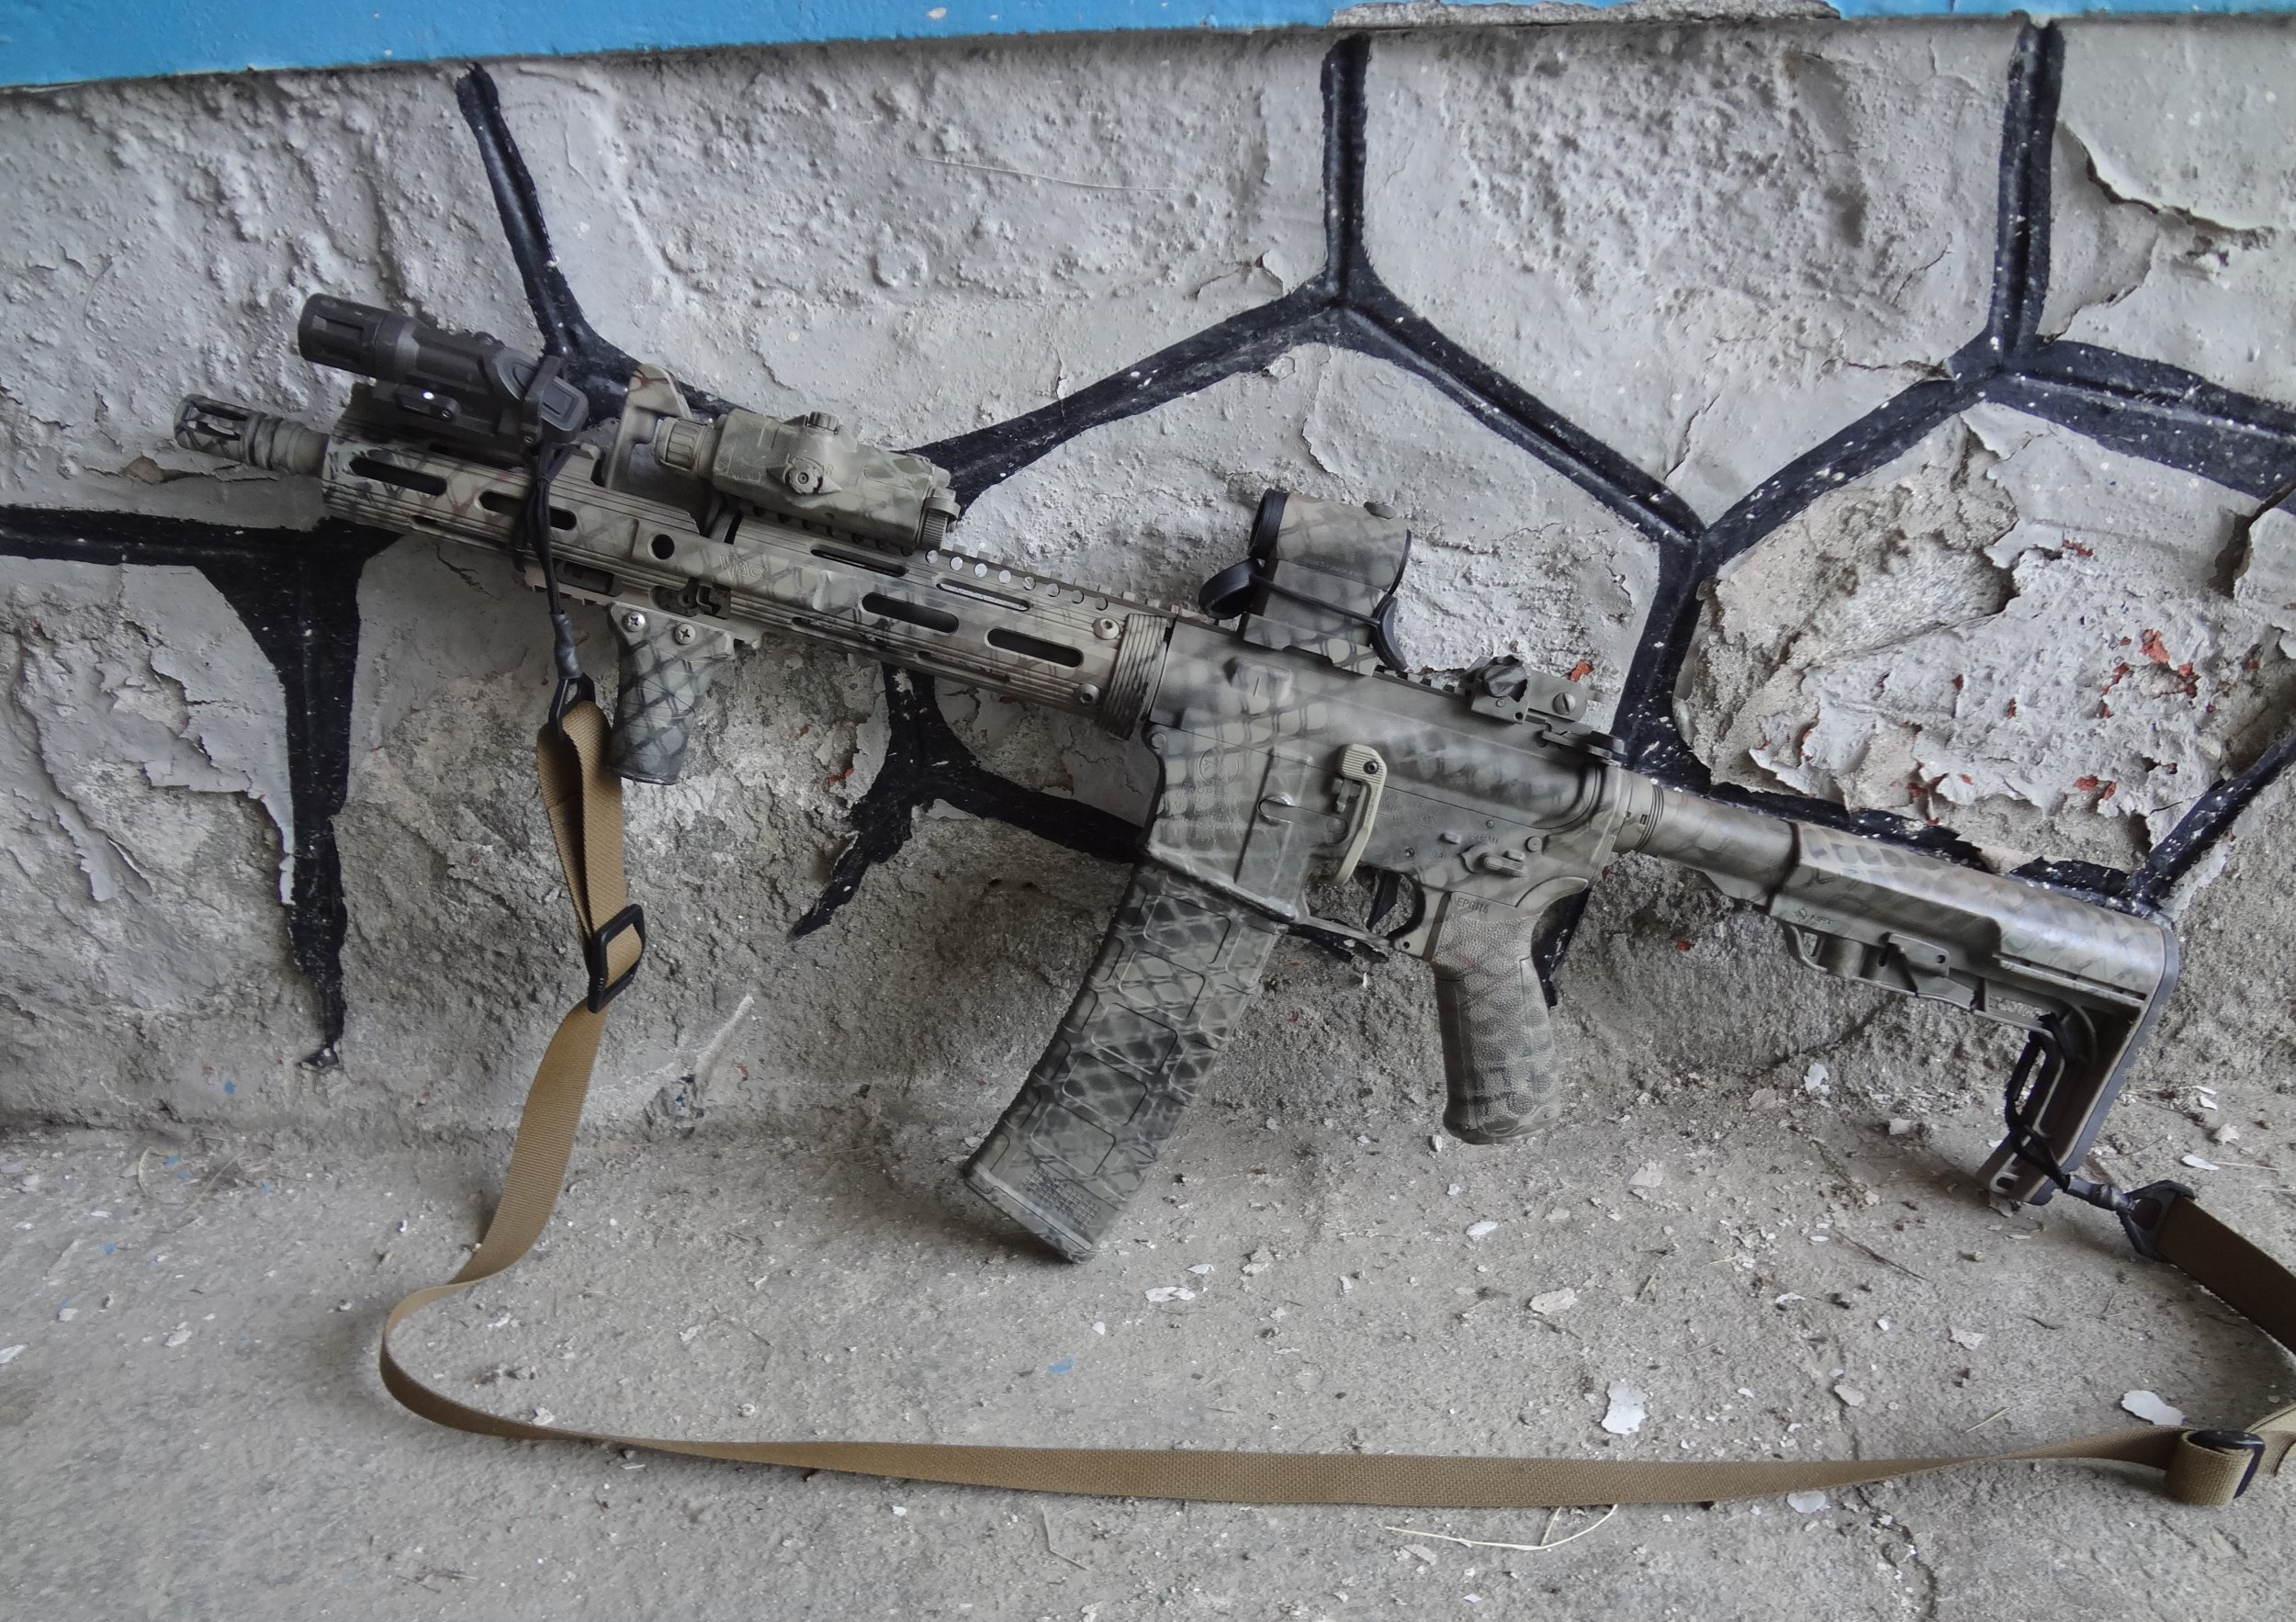 Jeff Gurwitch Article Tactical AR 15 M4 M4A1 Carbine SBR Sub Carbine Accessories Part II DefenseReview.com DR PIC G Tactical AR 15/M4/M4A1 Carbine/SBR Aftermarket Accessories for Military Combat Applications: The Competition to Combat Crossover, Part 2